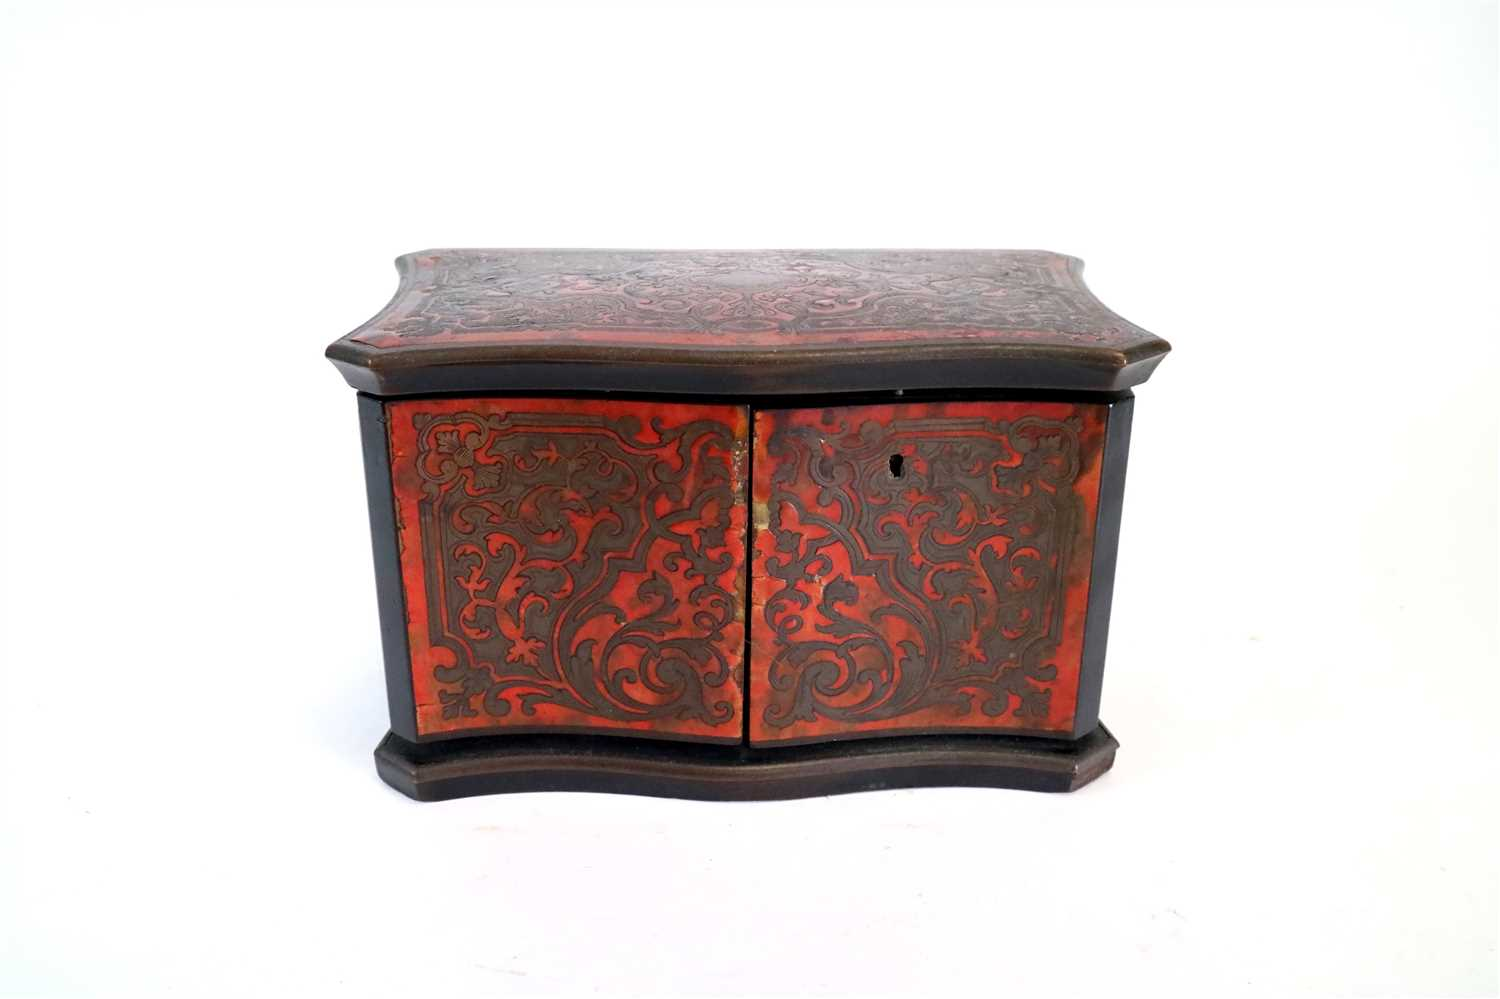 Lot 175-A 19th century inlaid boulle work tea caddy